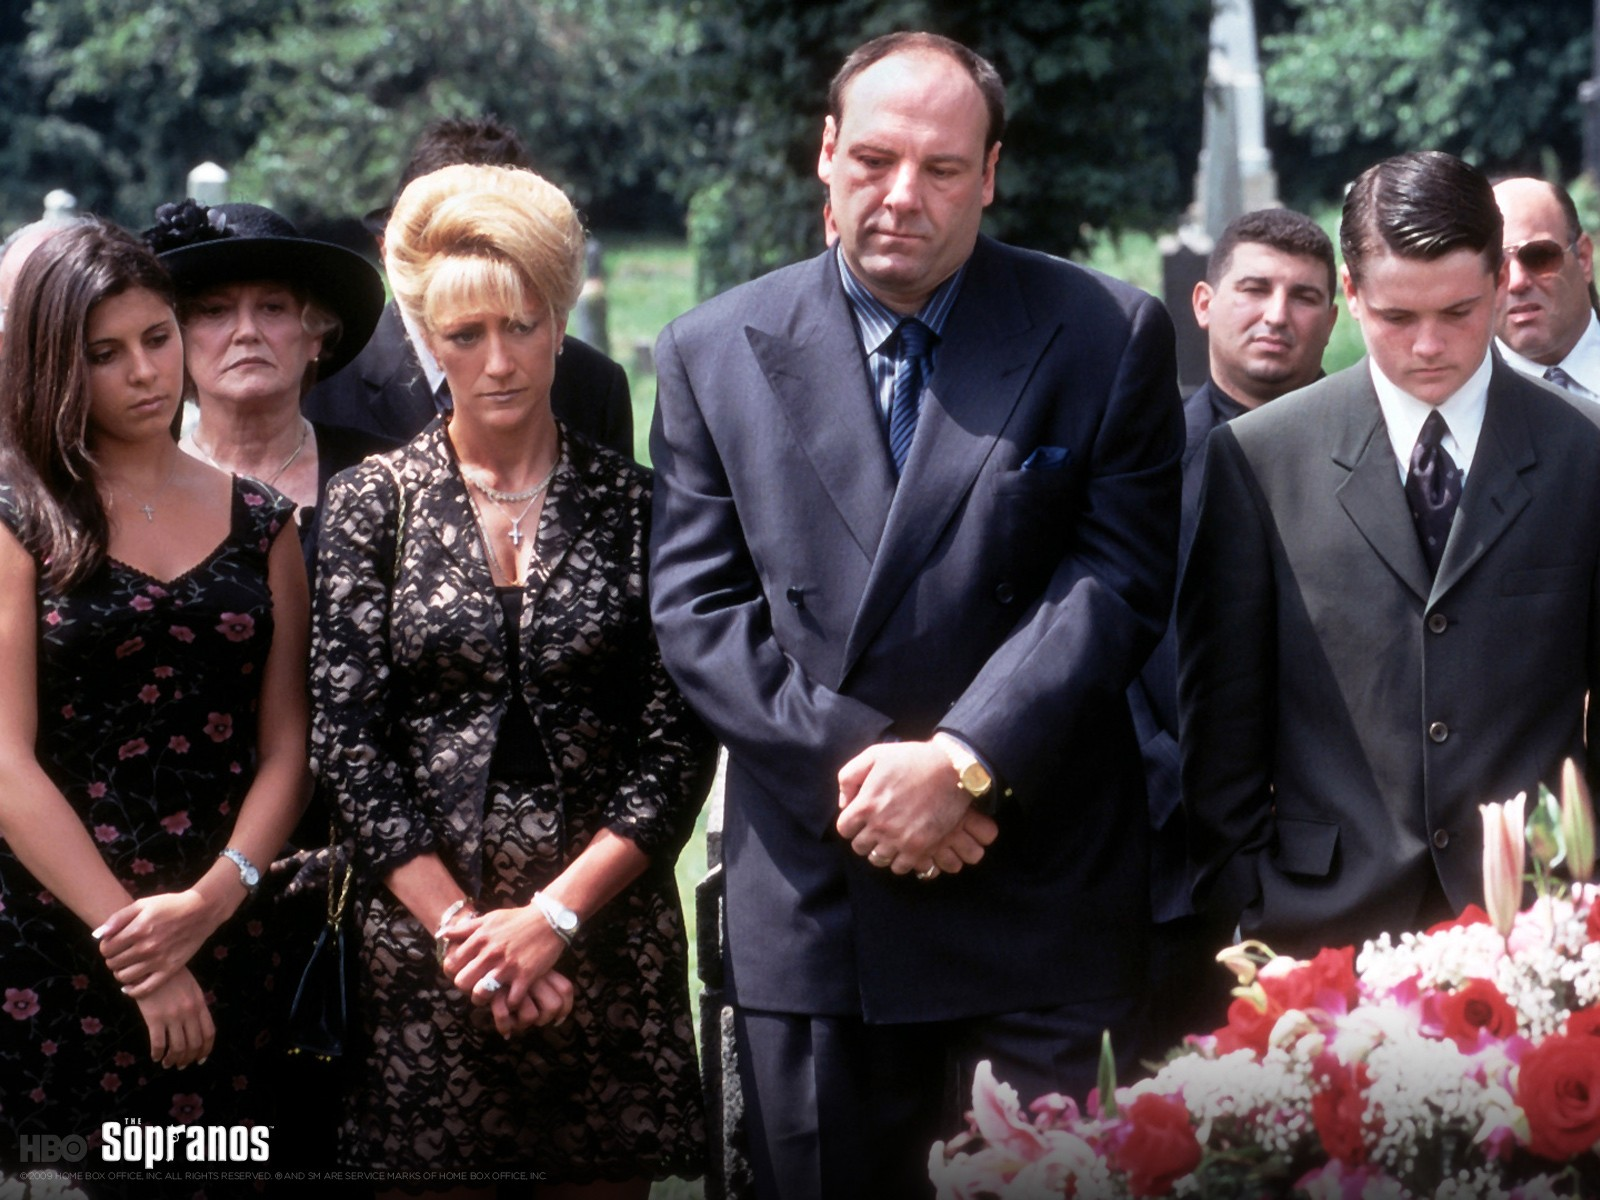 Tony Soprano And Carmela Soprano At Funeral